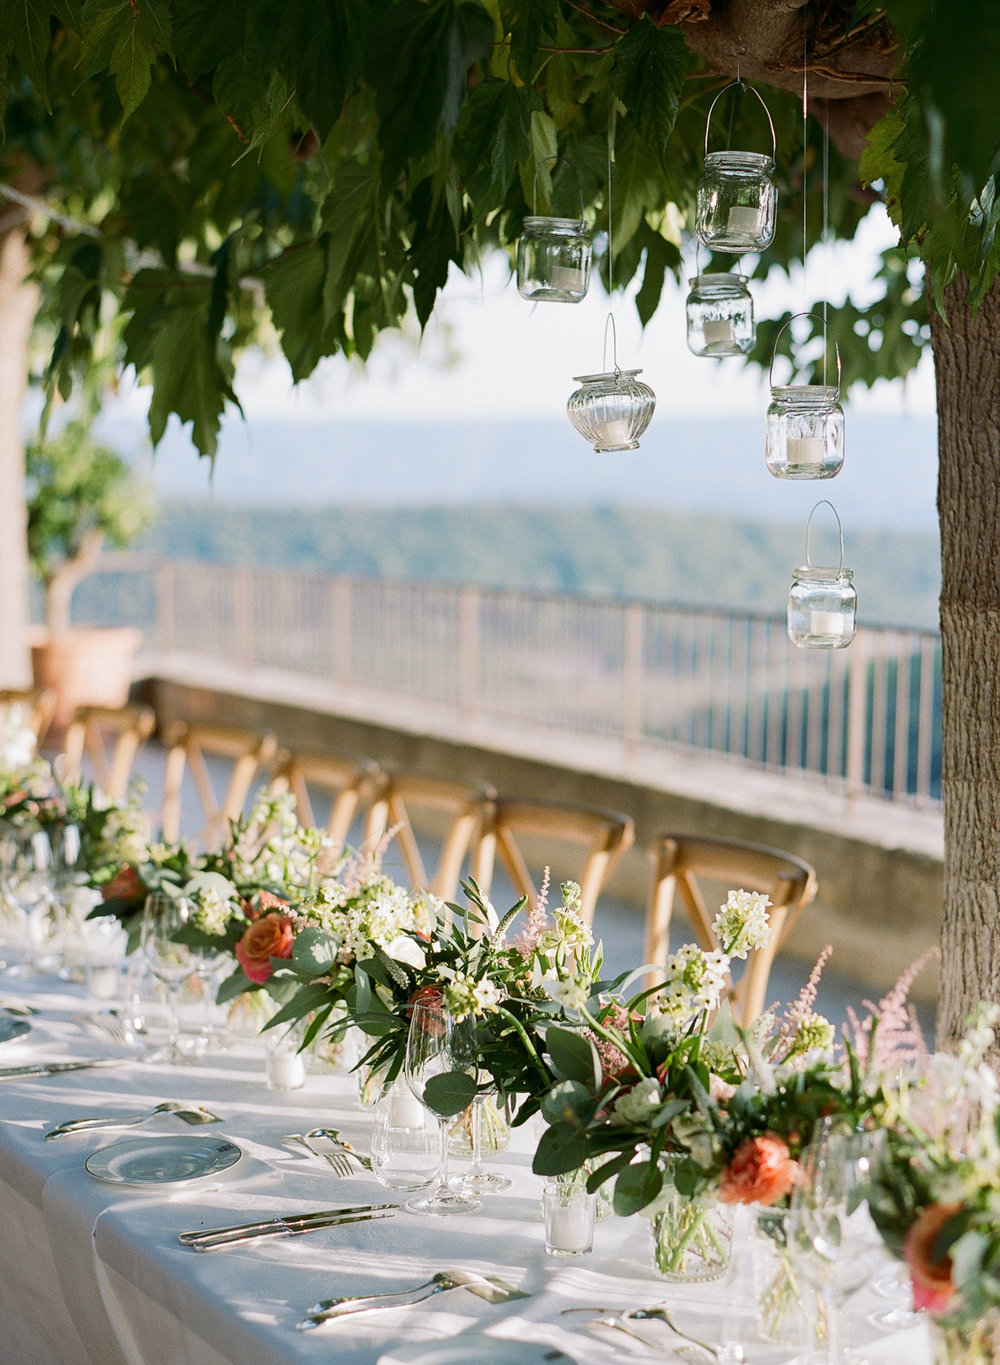 Sylvie-Gil-film-destination-wedding-photography-gordes-provence-france-chateau-reception-table